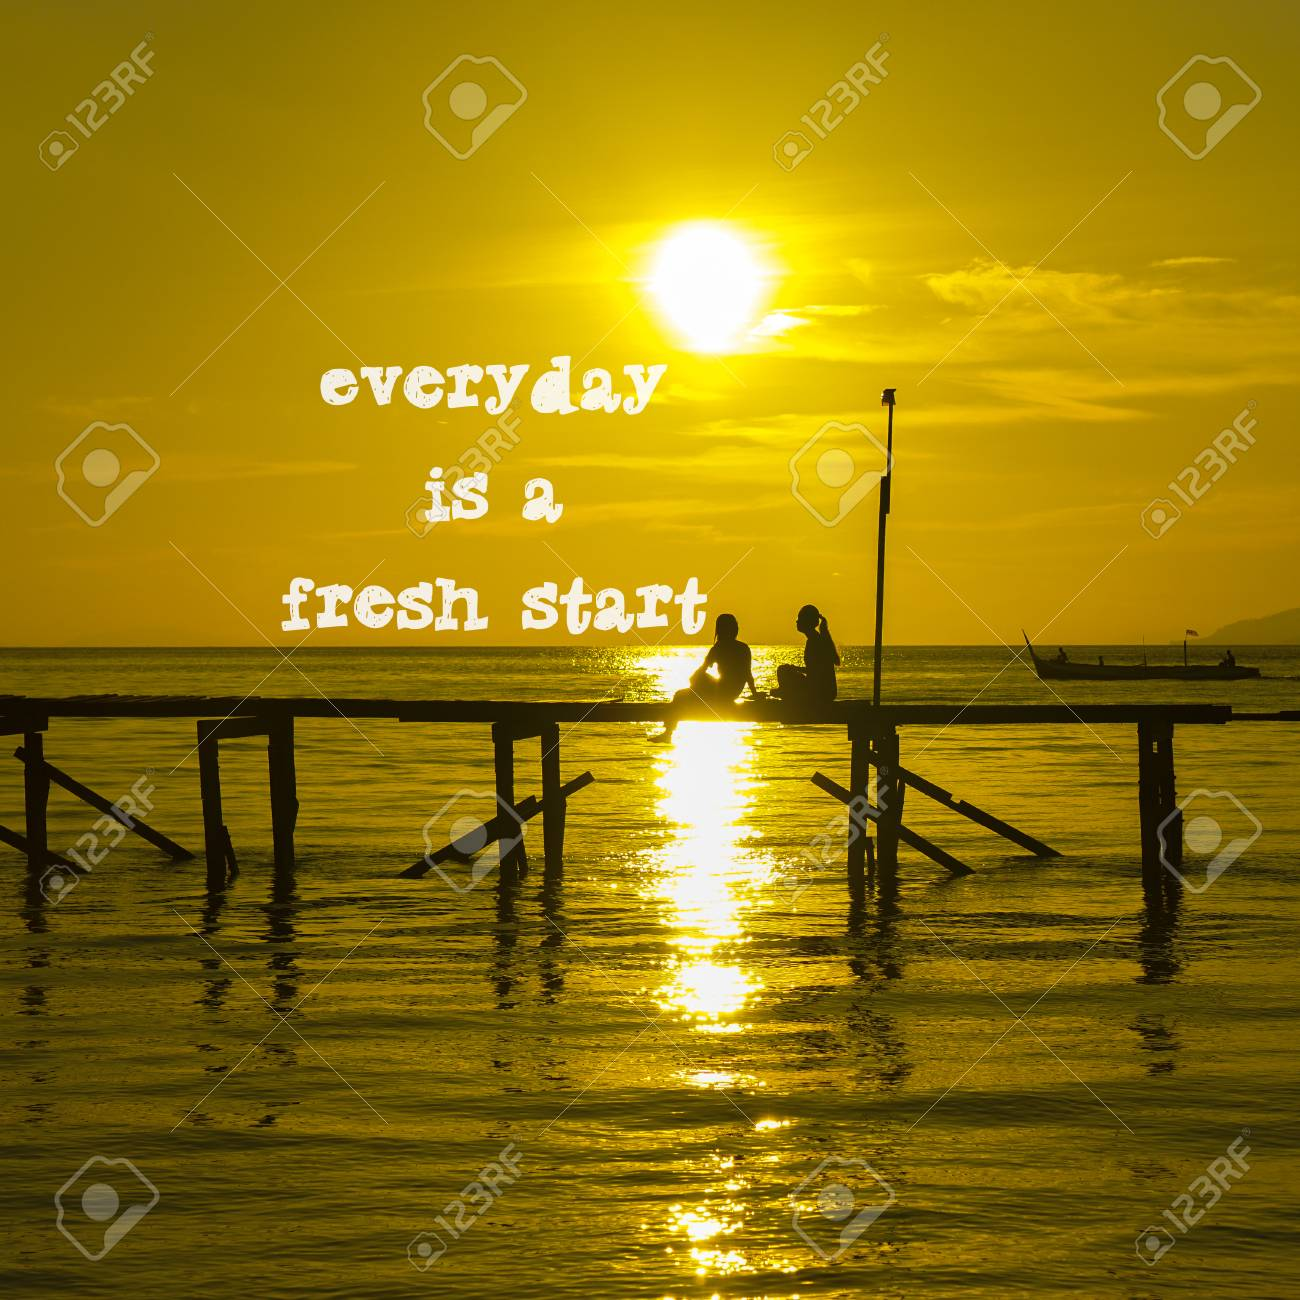 Life Inspirational Quotes Everyday Is A Fresh Start On Nature